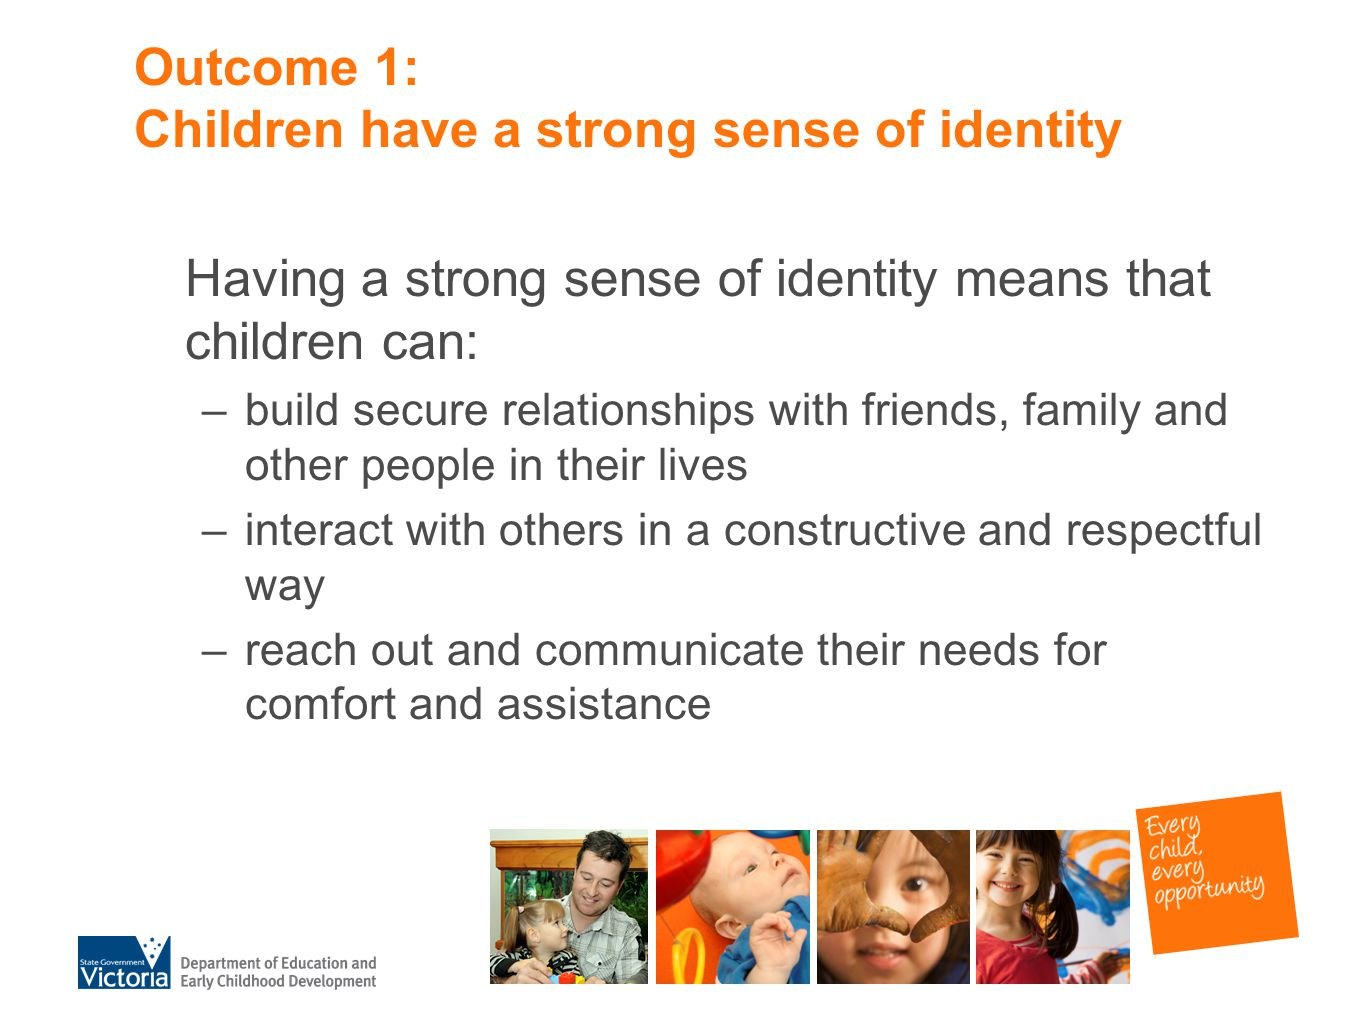 Outcome 2 Children are connected with and contribute to their world Being connected with and contributing to the world means that children can: explore their world by making new friends learn about fairness and how to live independently and with other people understand the natural environment